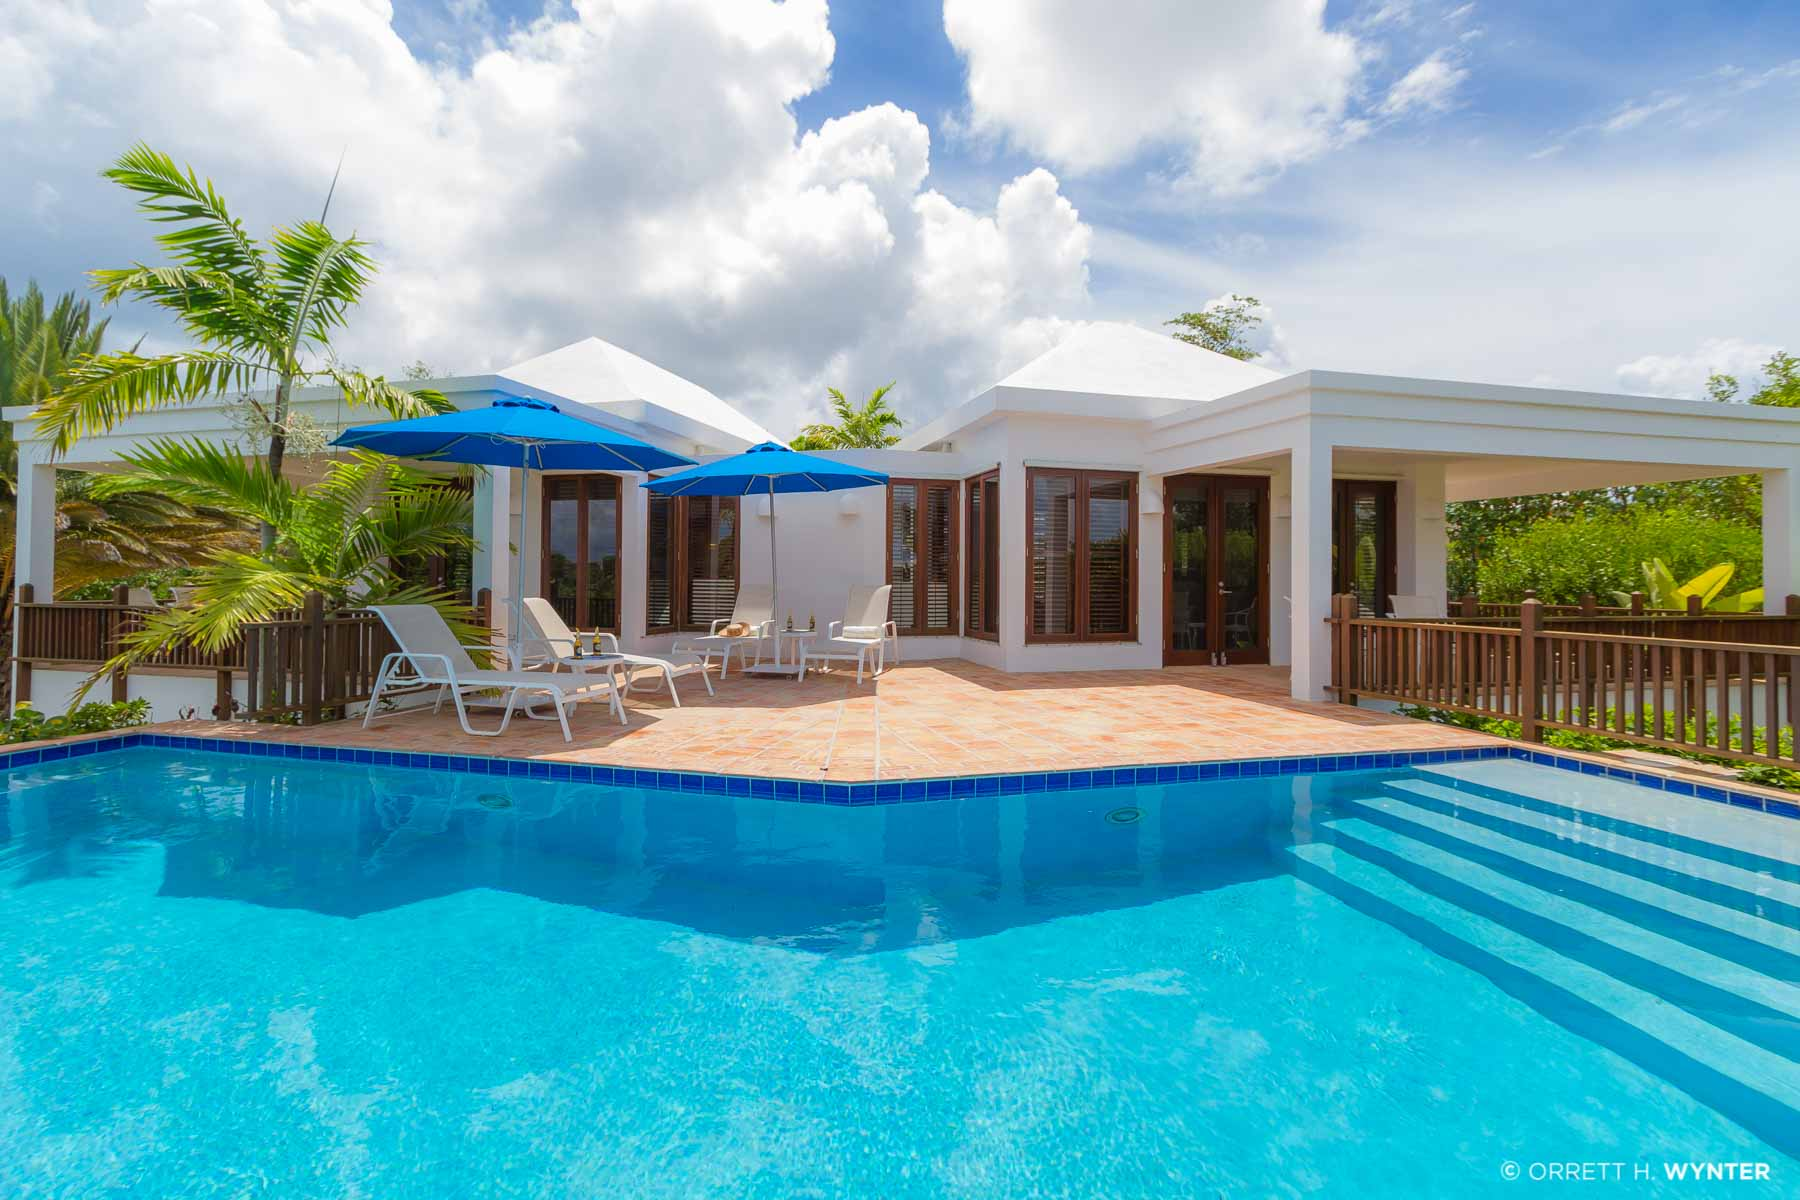 2 Bedroom Anguilla Villa Rental at Meads Bay